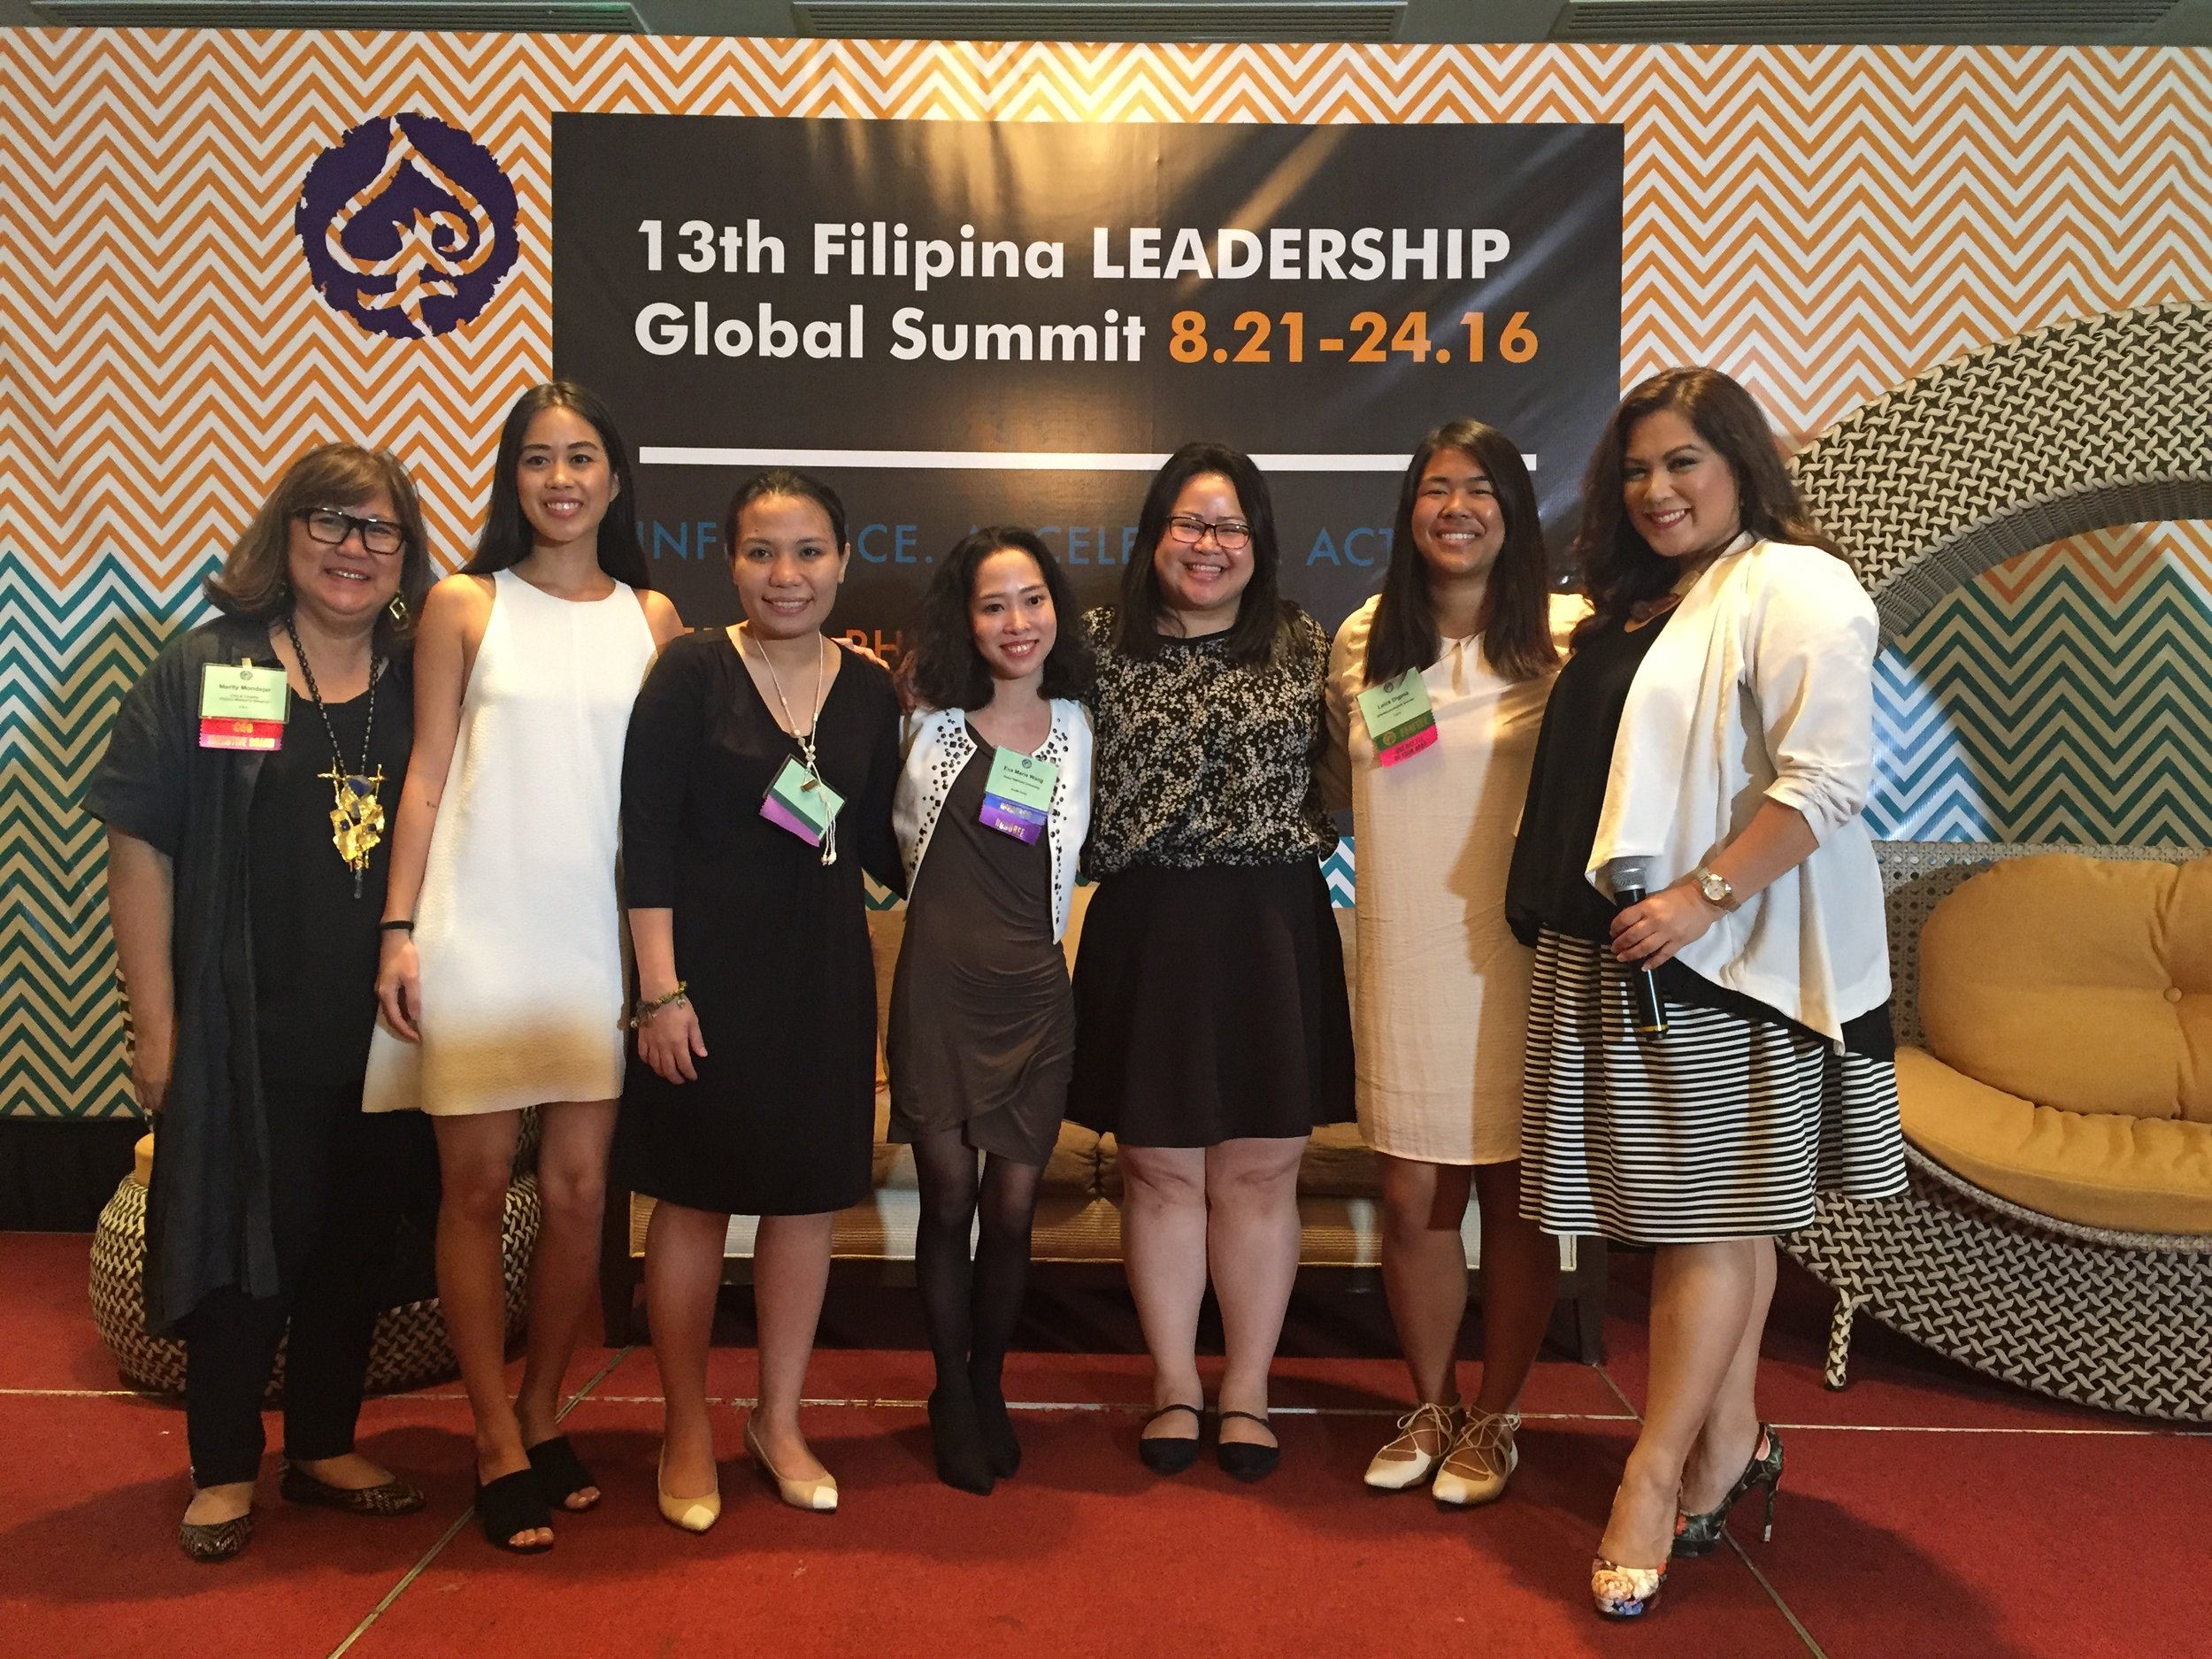 #FWNSummit2016 Smart. Young. Unintimidated. Next Generation Leaders. Yes. We. Are. Panel participants pictured with FWN CEO & Founder Marily Mondejar, FWN Fellow Raissa Alvero, Anne Quintos (Global FWN100™ '16), Eva Marie Wang (Global FWN100™ '16), Mary Lou Cunanan (Global FWN100™ '16), Leira Mae Digma, the Face of Global Pinay Power Francine Maigue (Global FWN100™ '15)